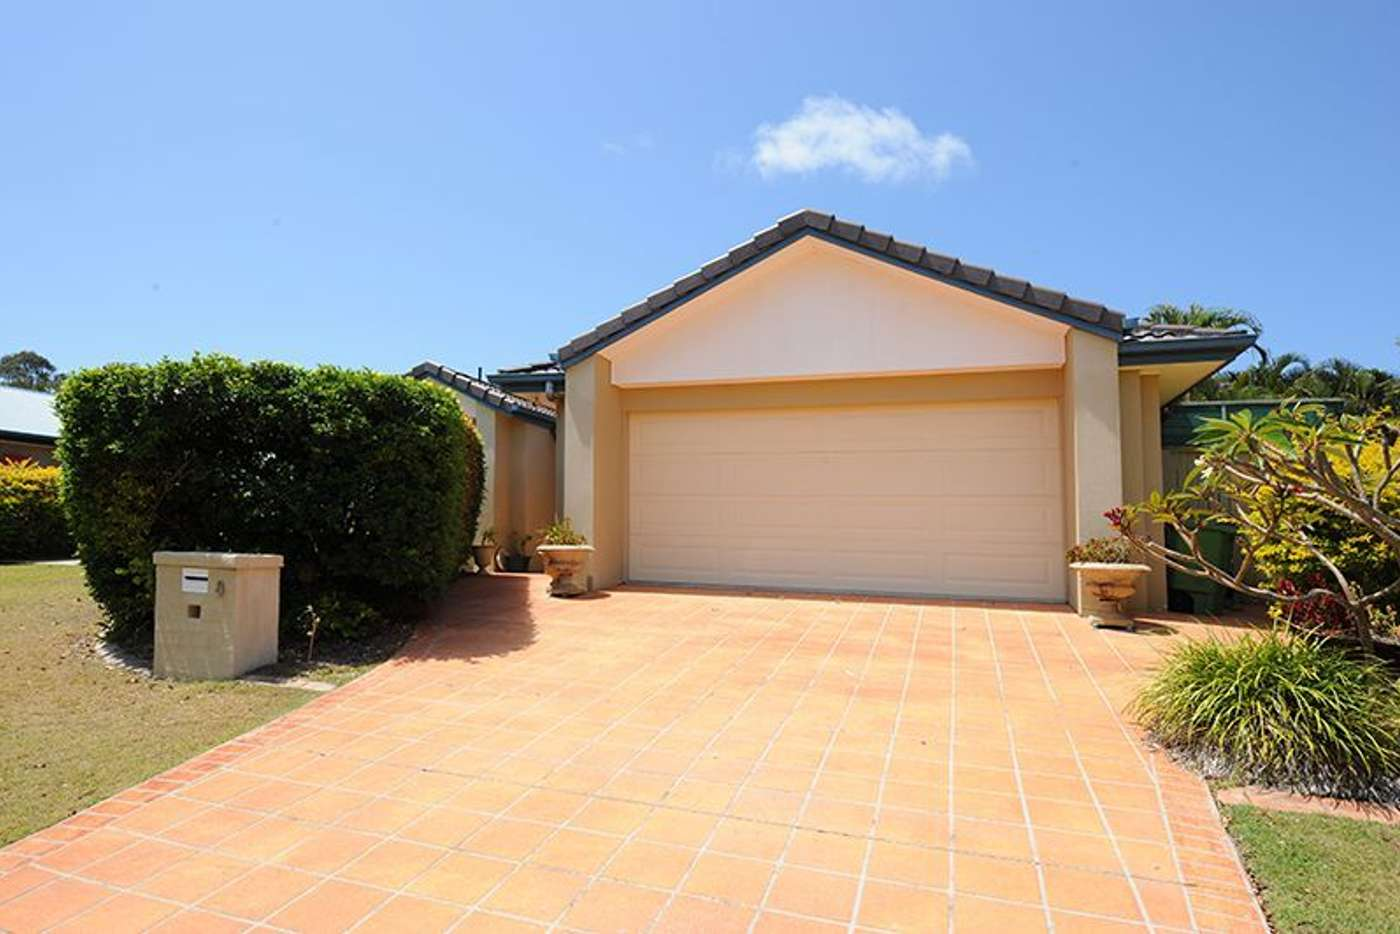 Main view of Homely house listing, 8 Lilac Cresent, Currimundi QLD 4551